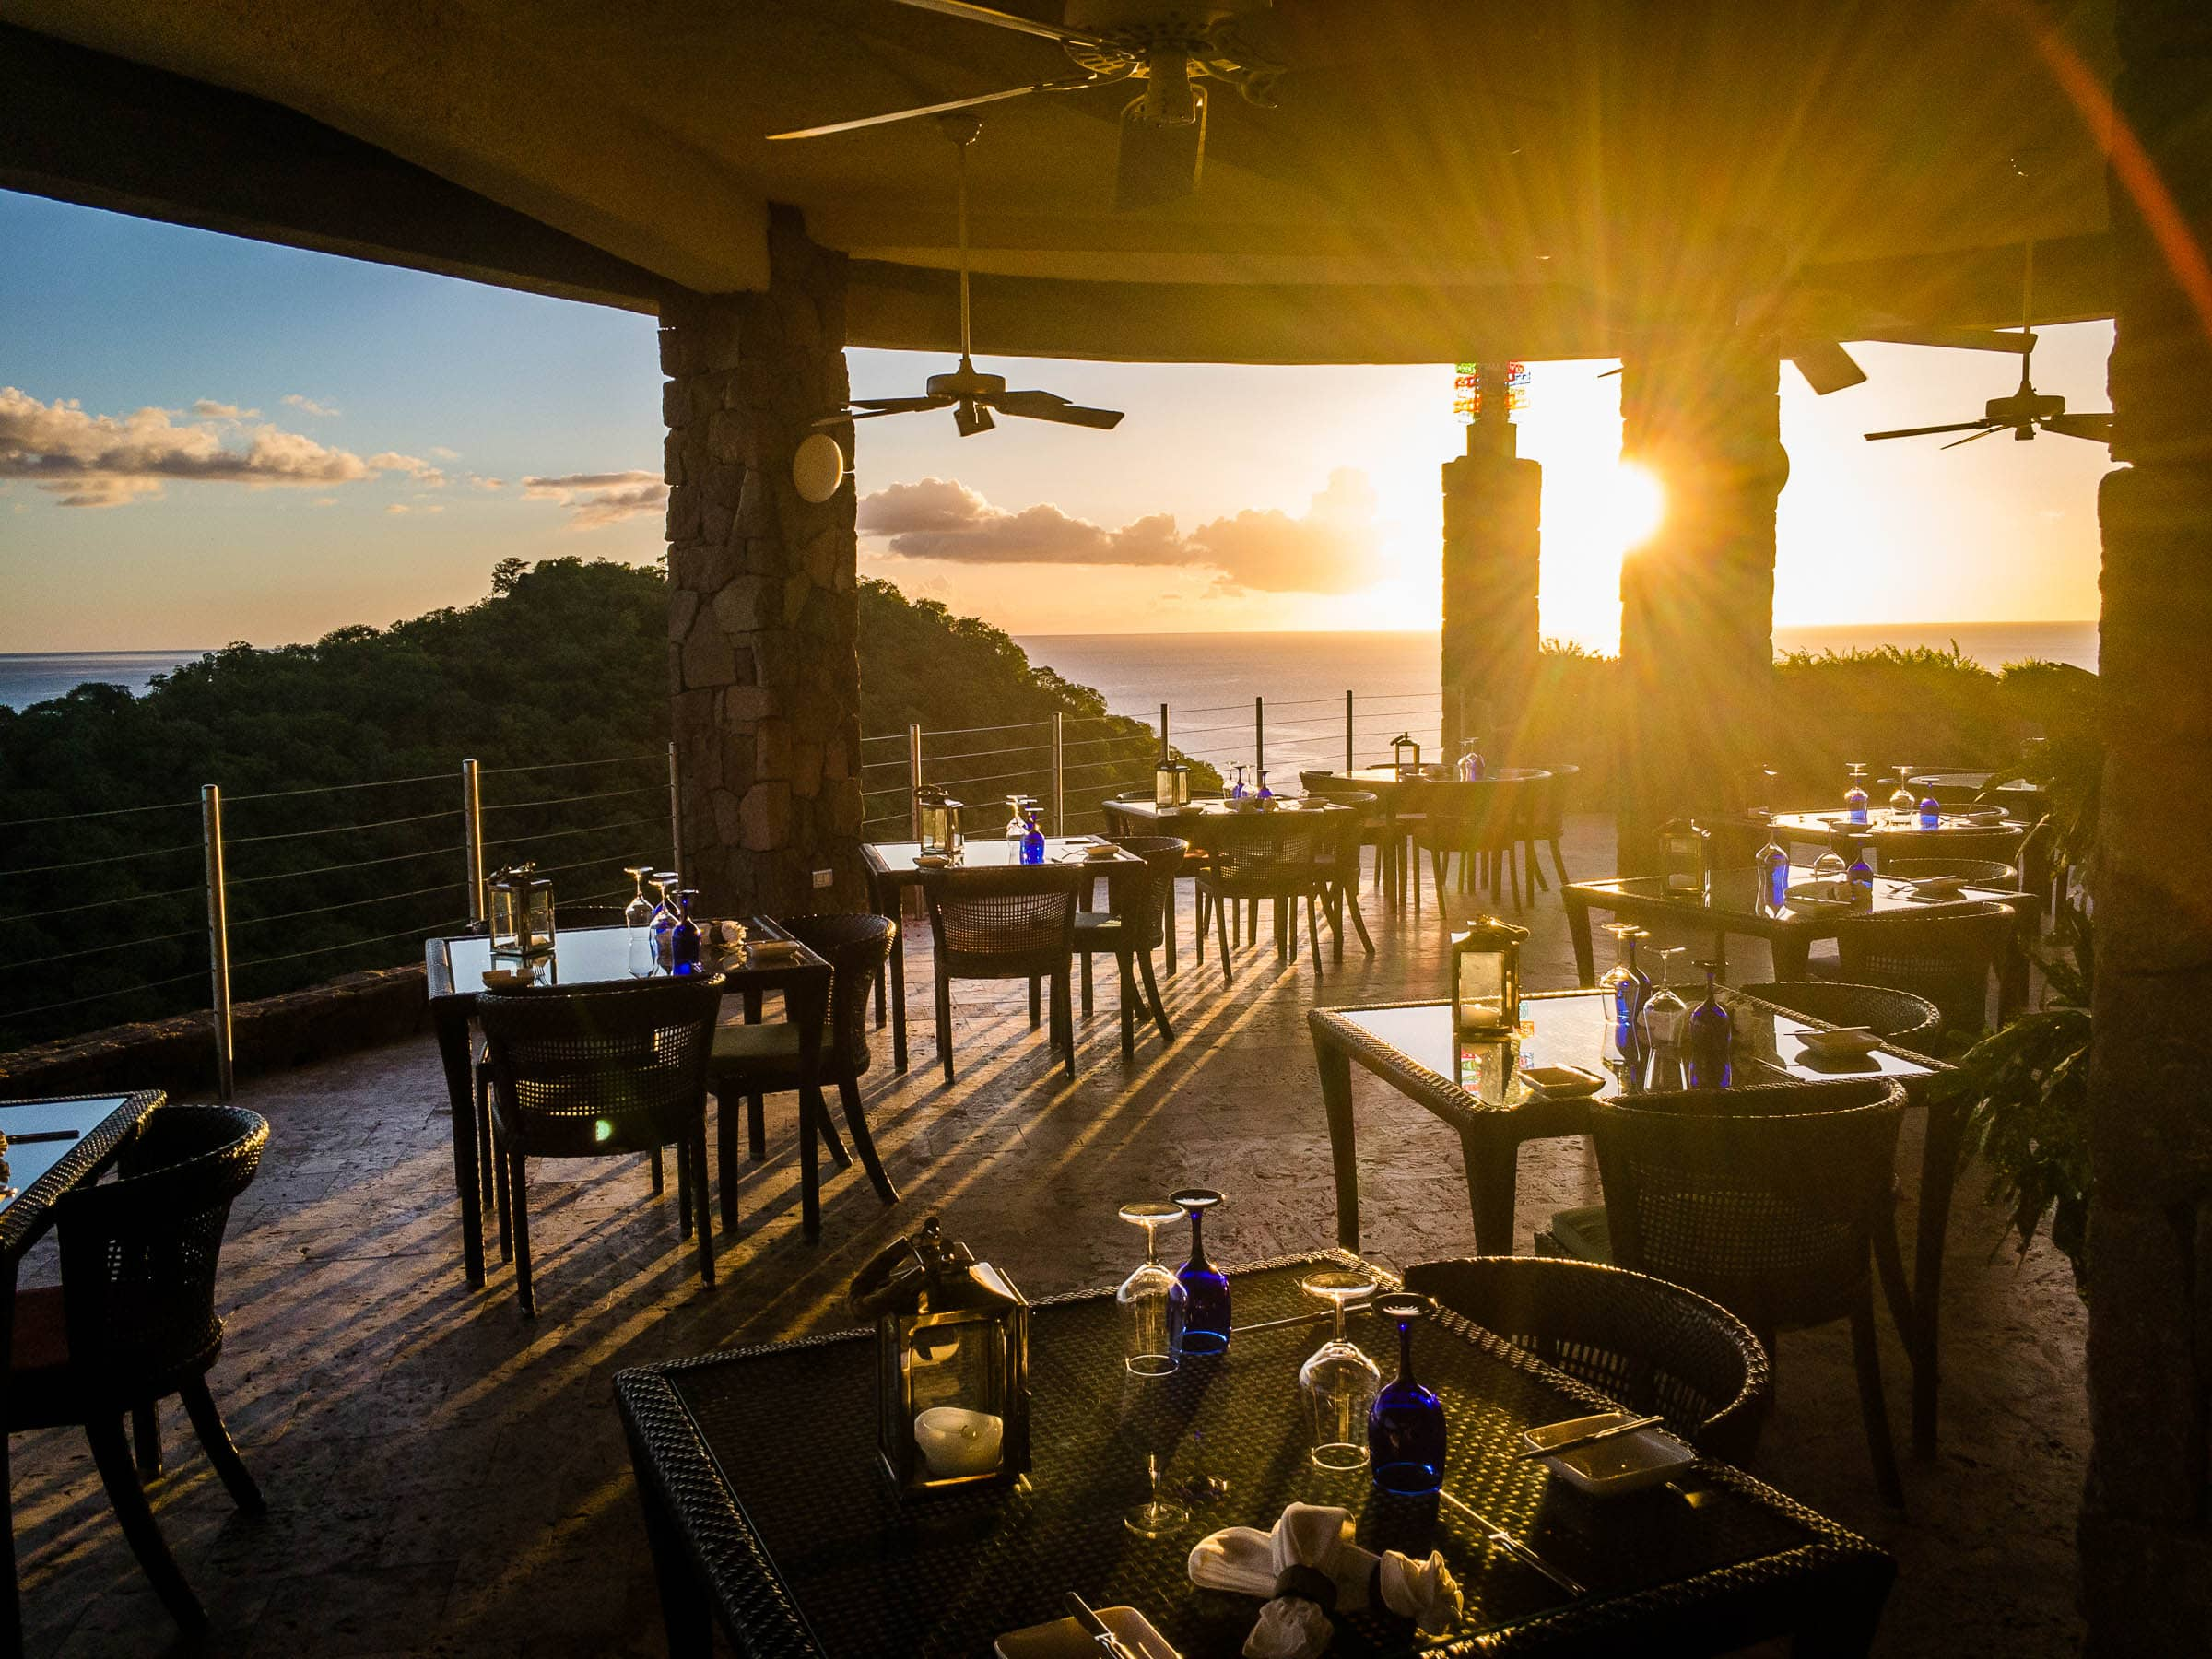 Sunsets stream through the dining area.